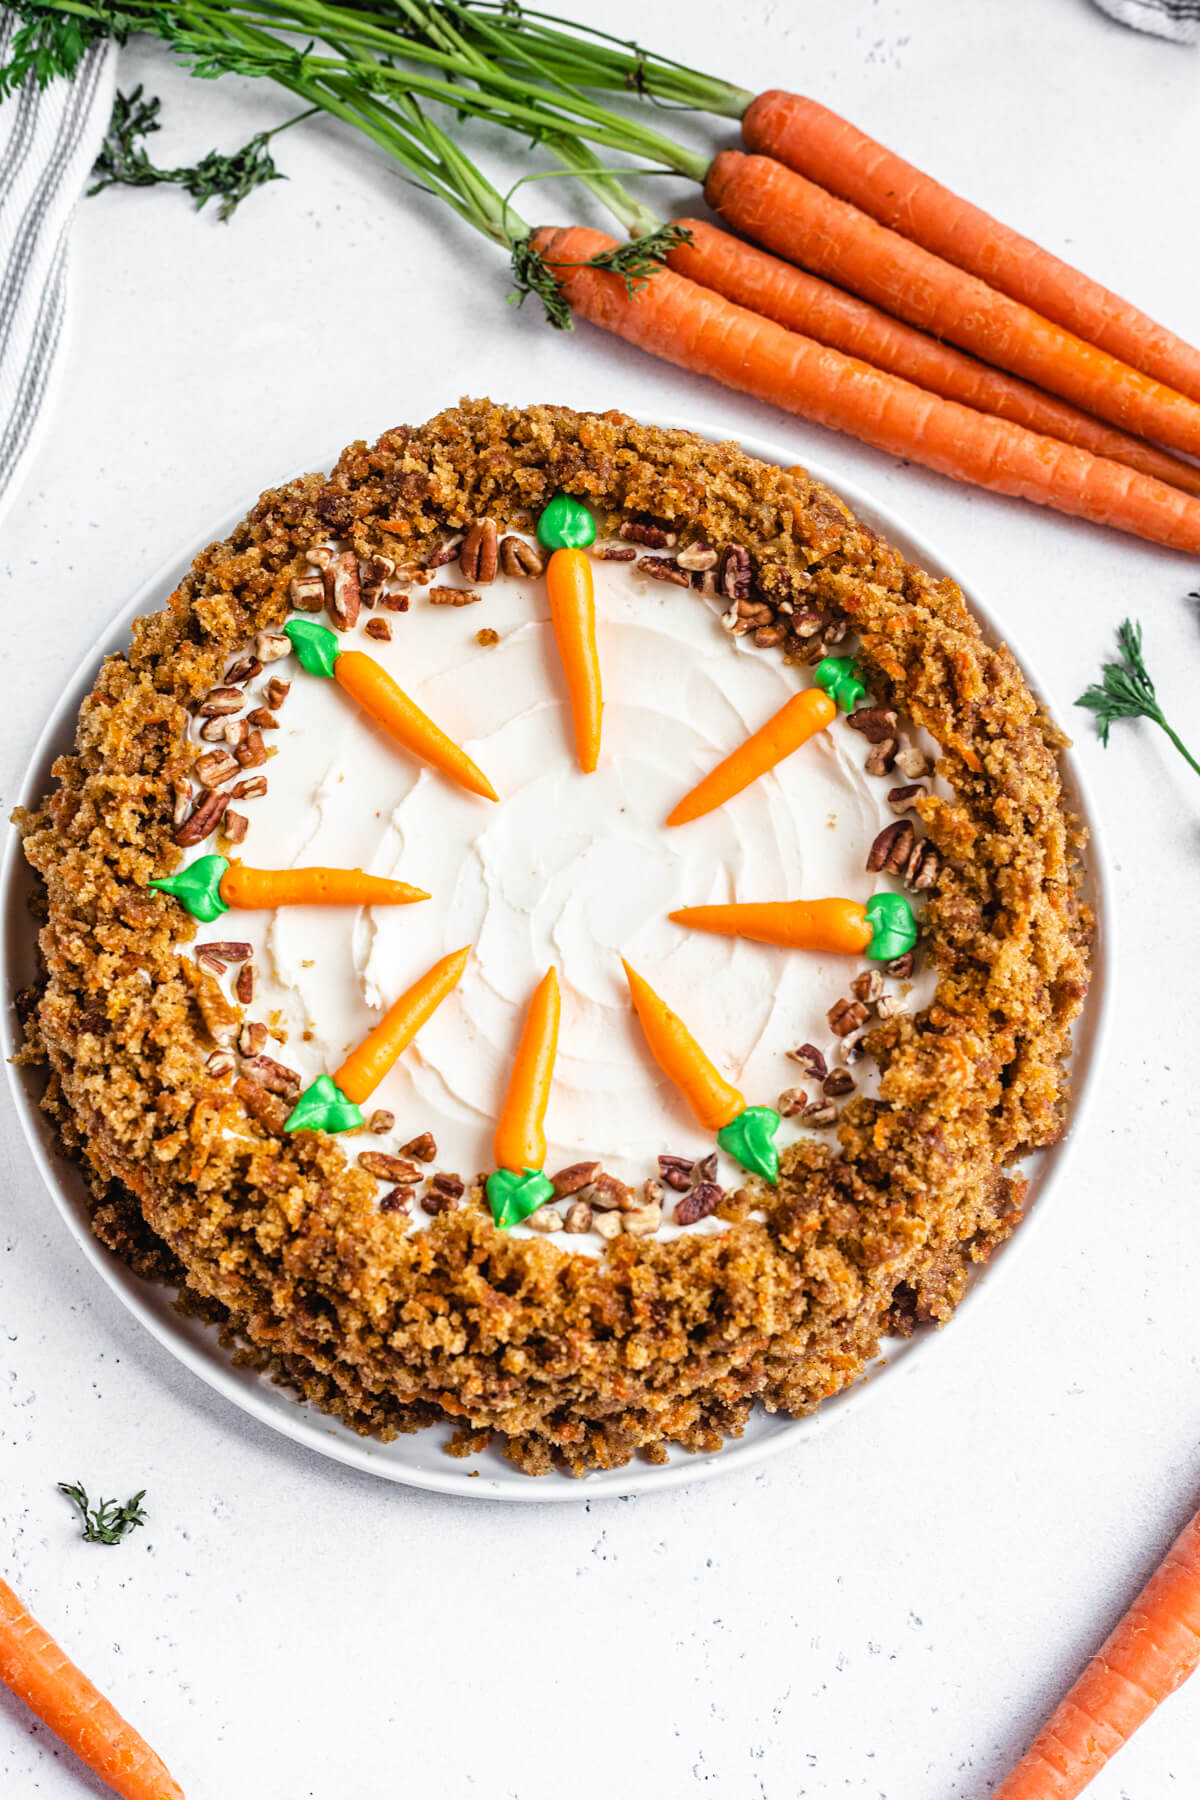 top view of cheesecake on a white plate with carrots around